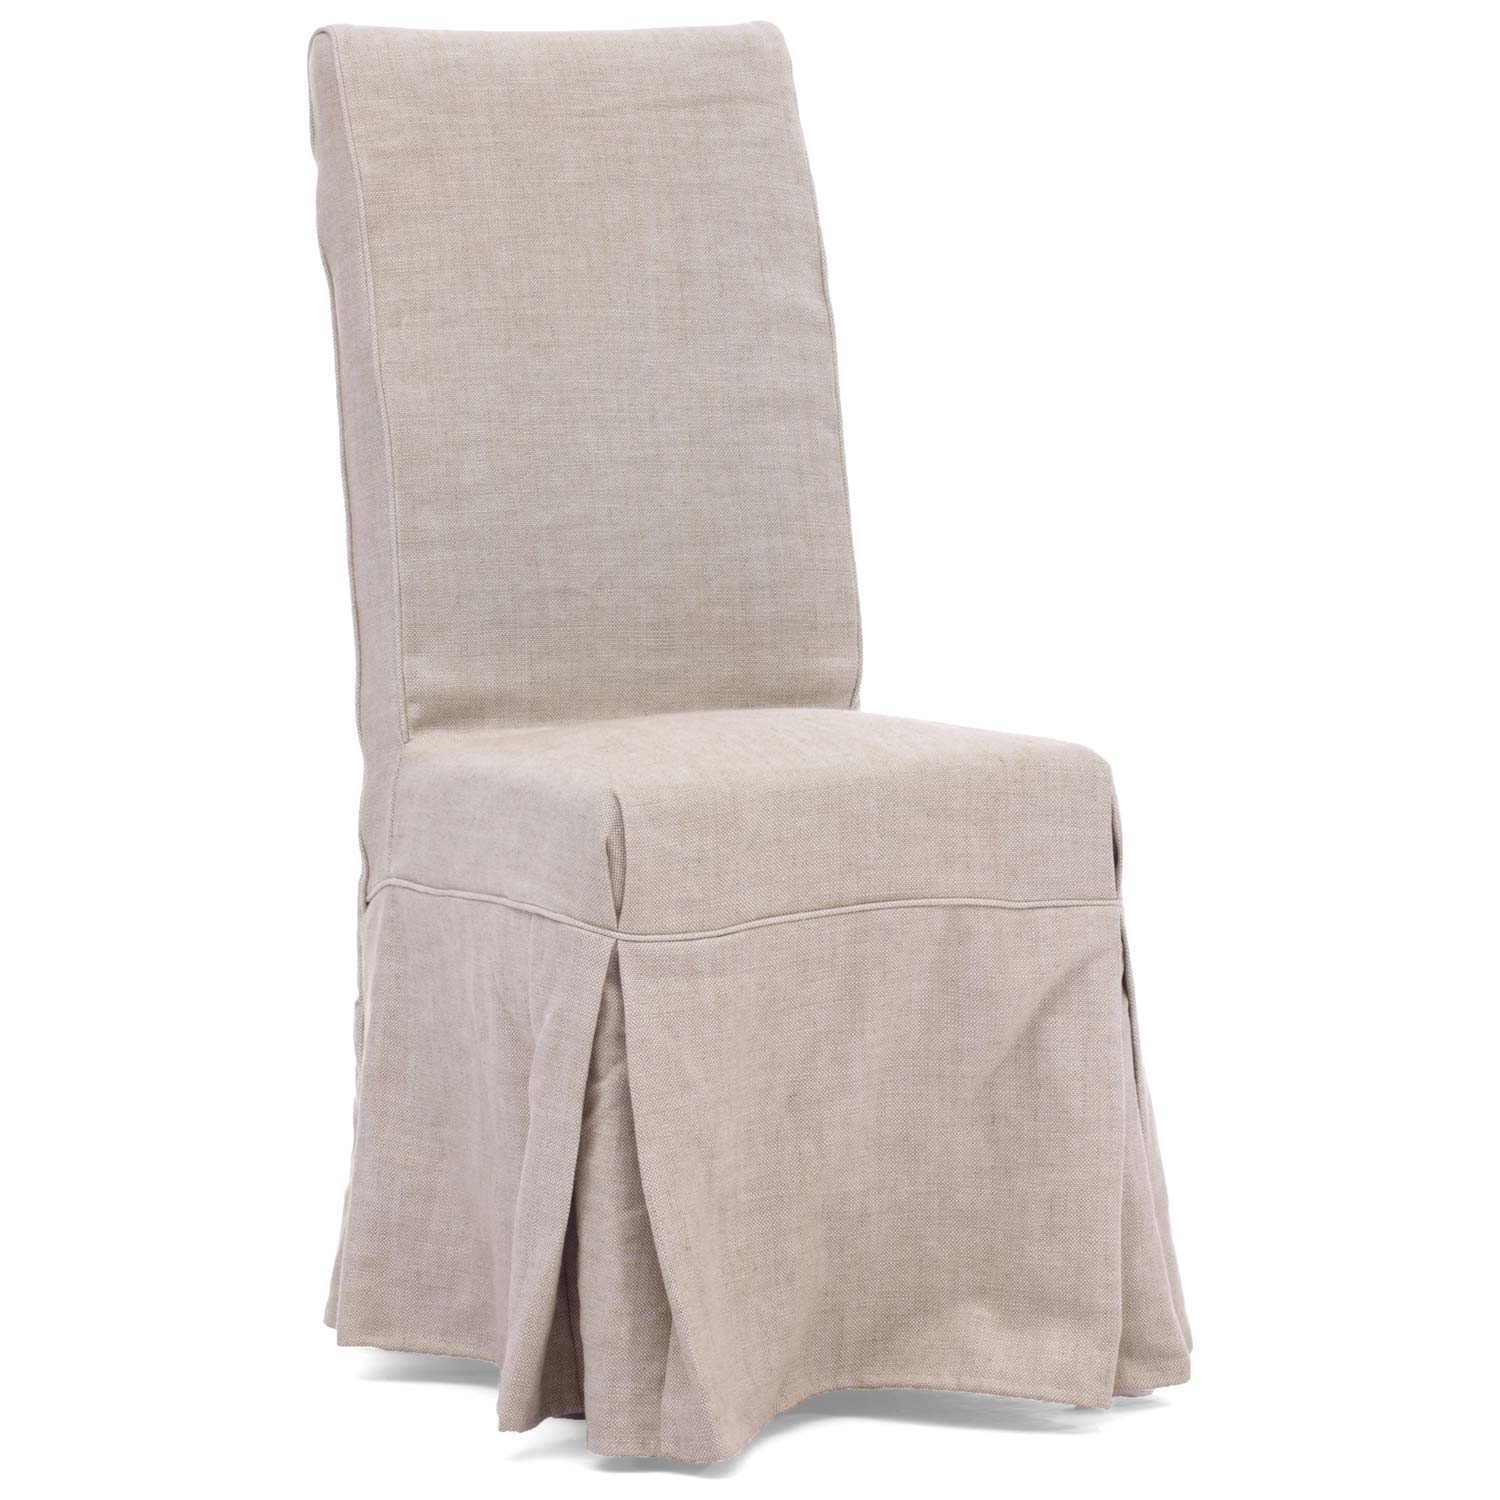 Dog Patch Chair - Beige Linen Slipcover